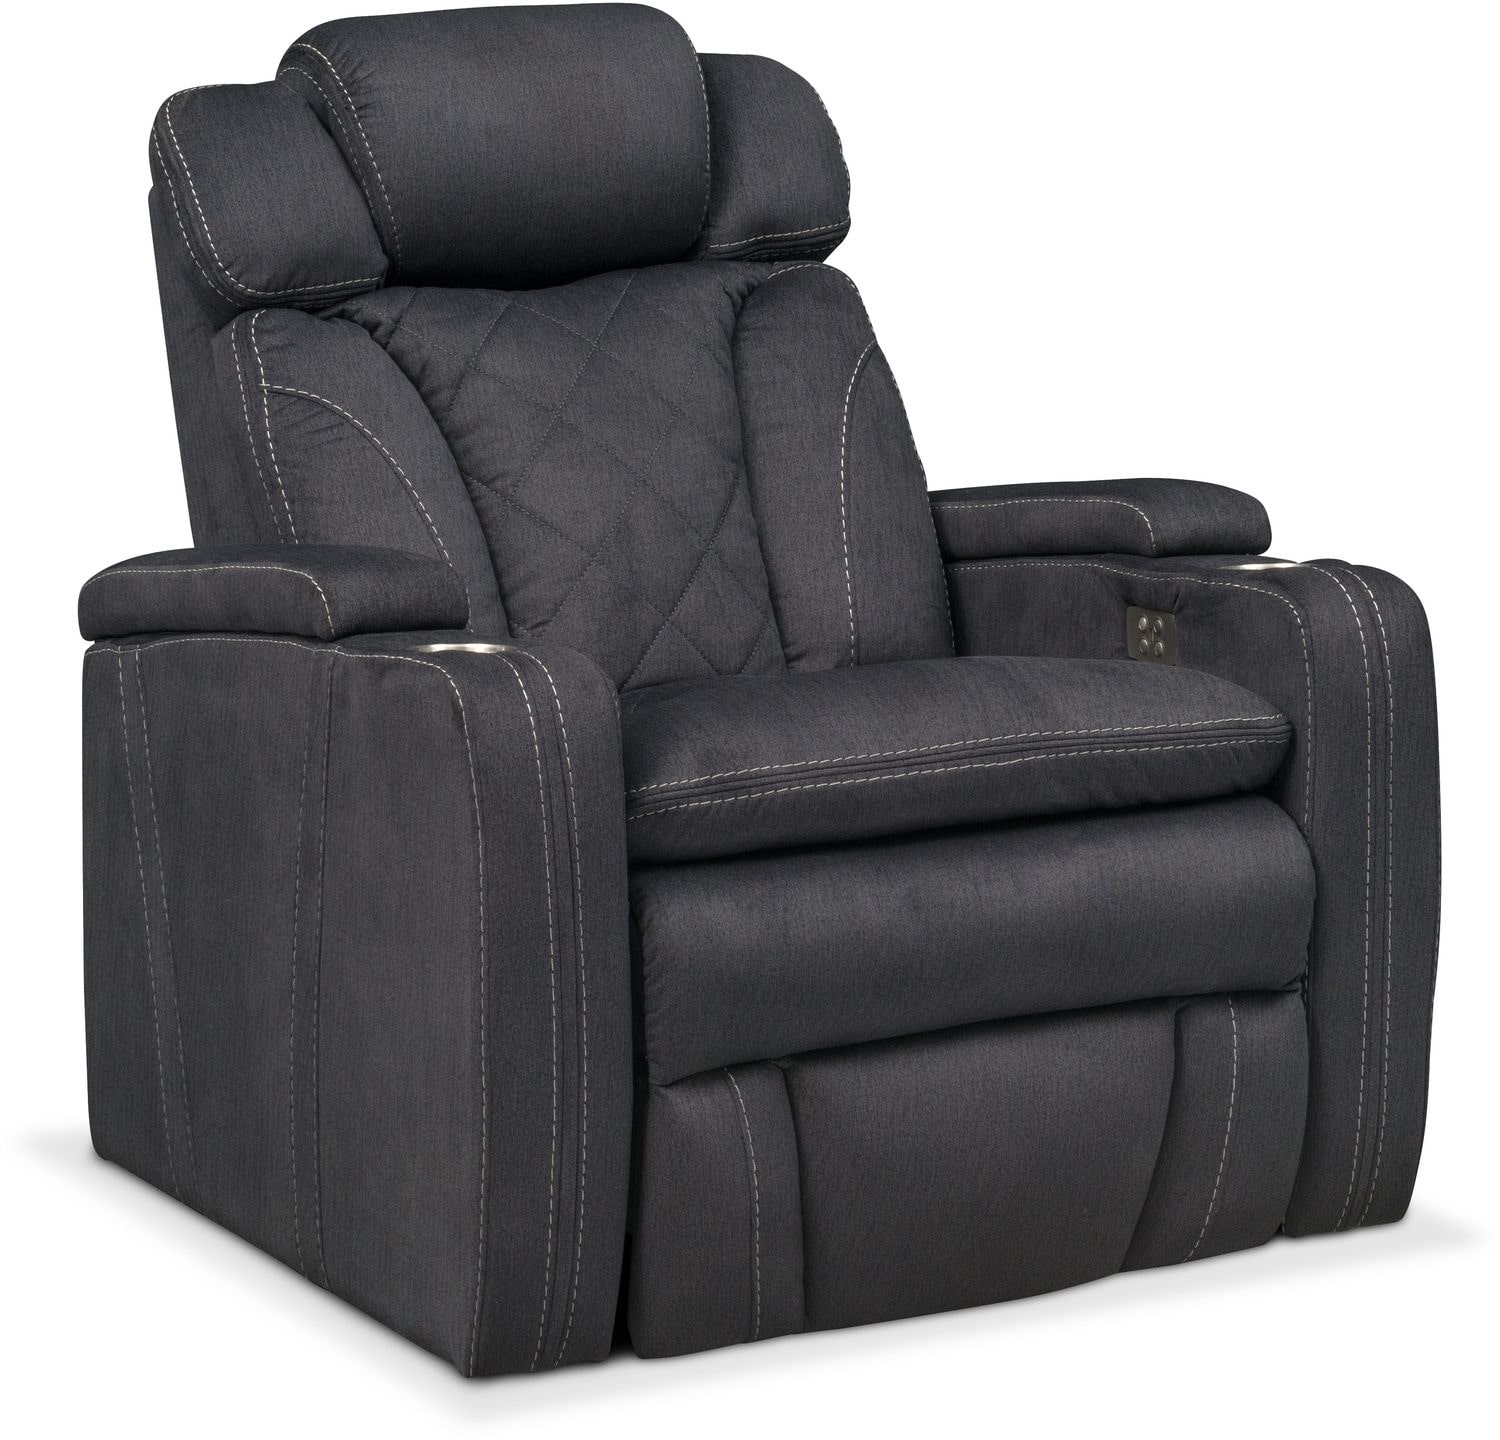 Power Reclining Chairs Fiero Power Recliner Charcoal American Signature Furniture